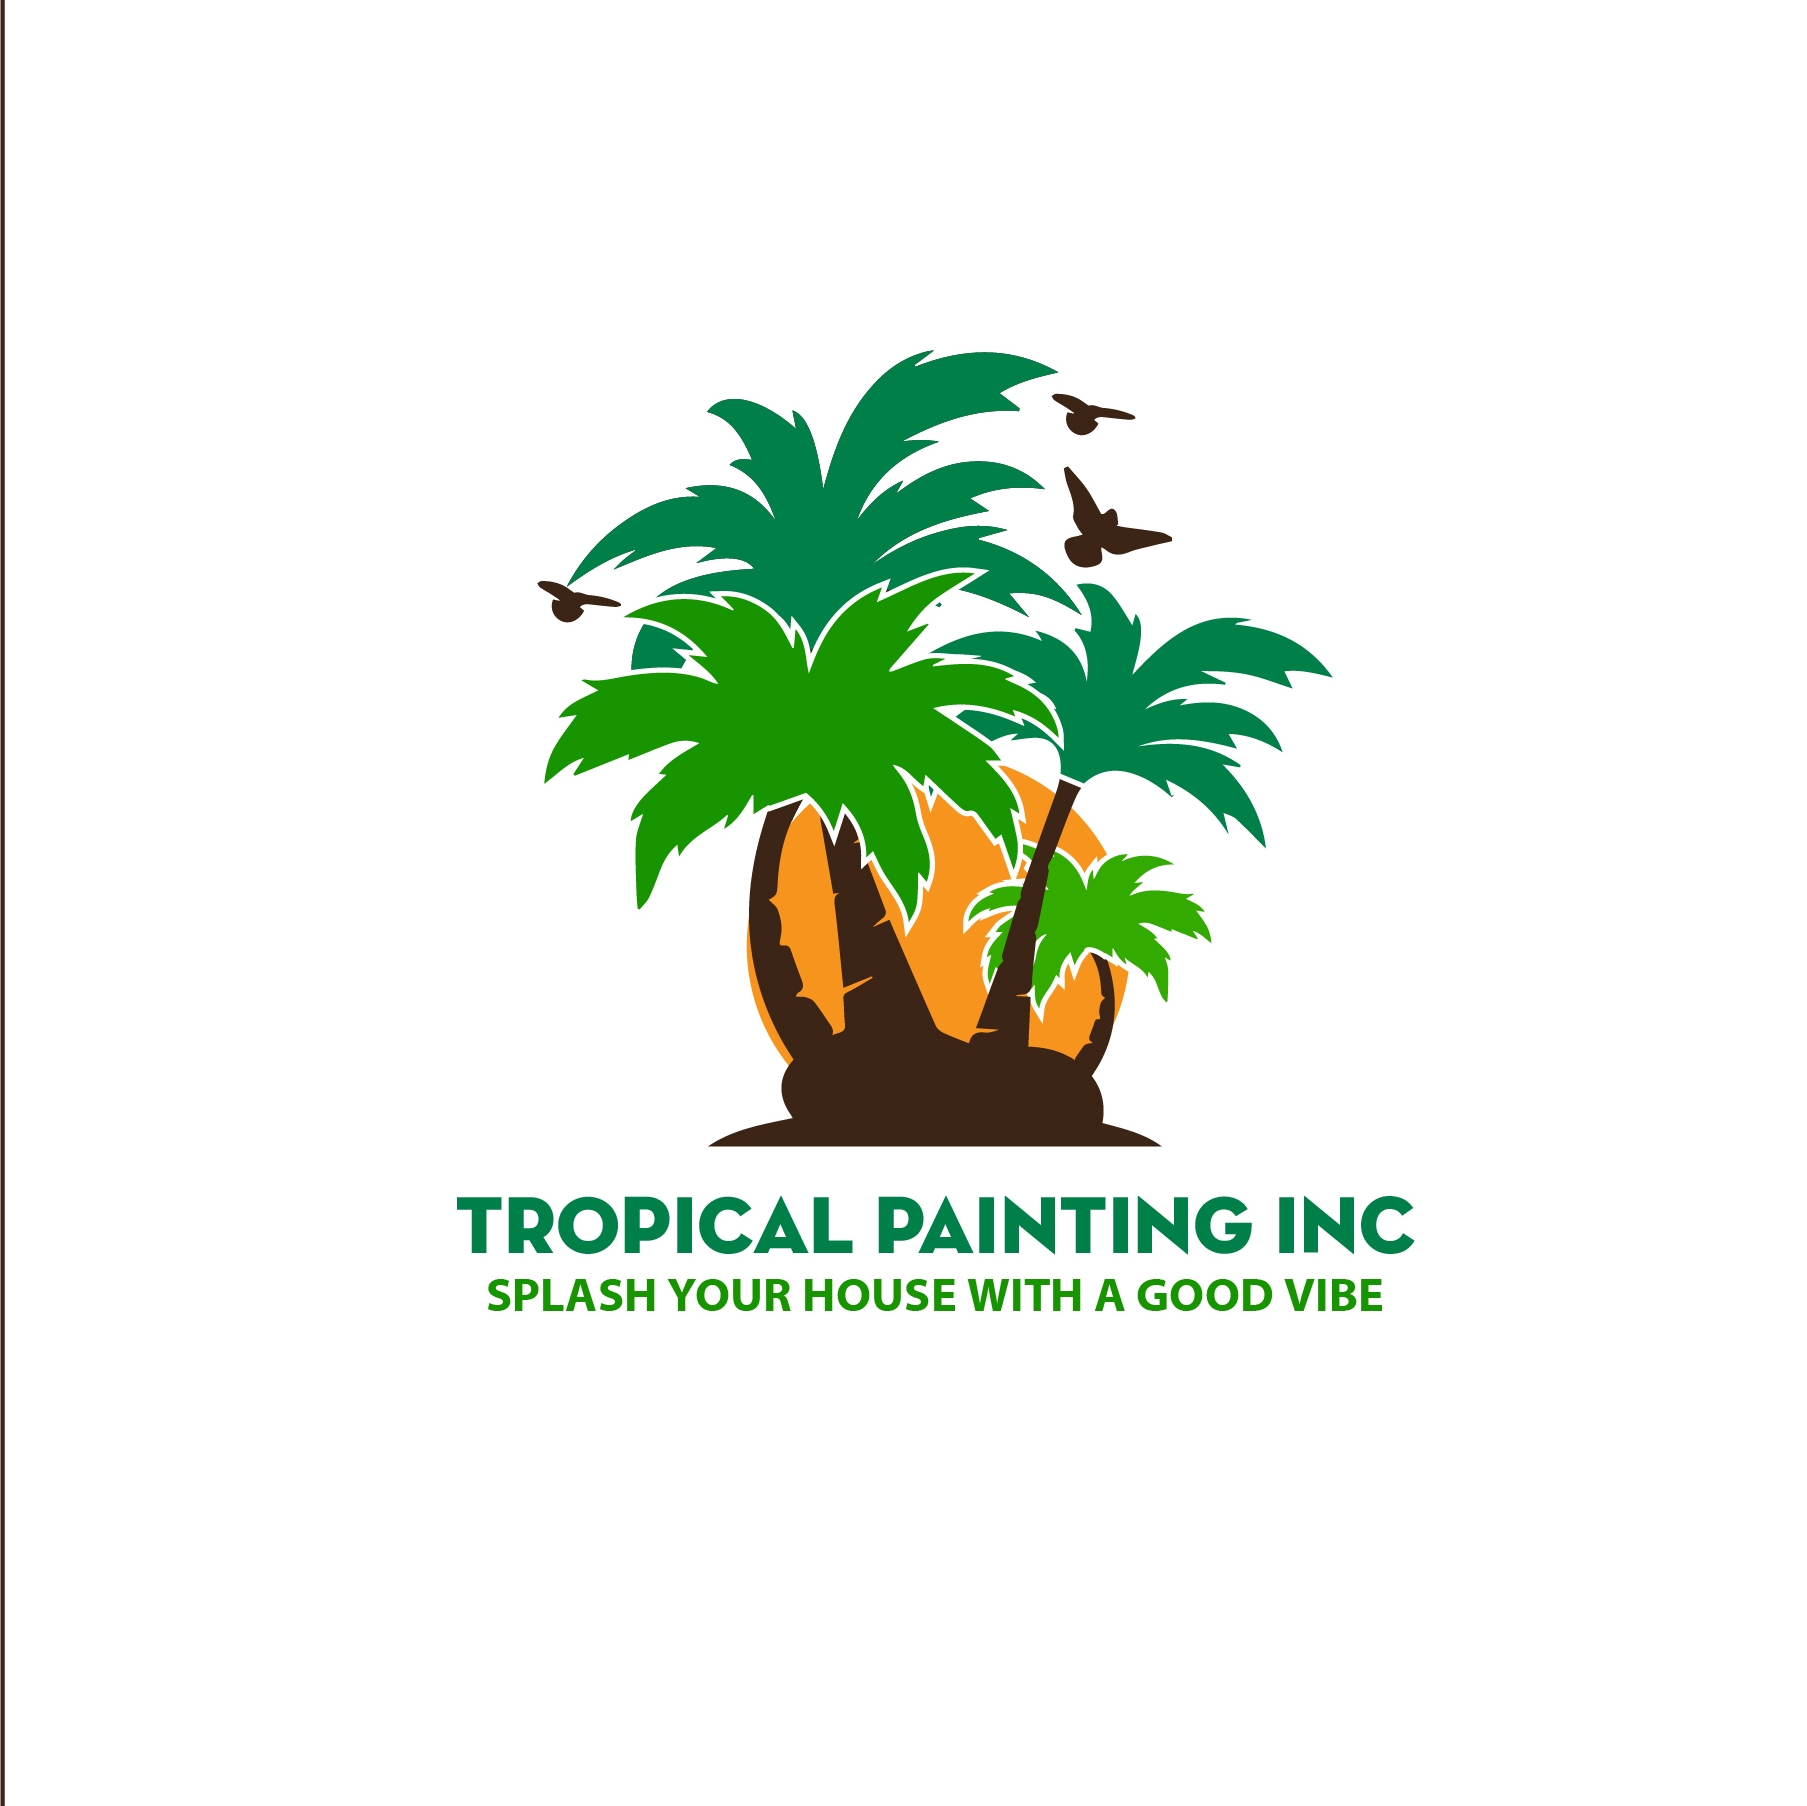 Tropical Painting Inc